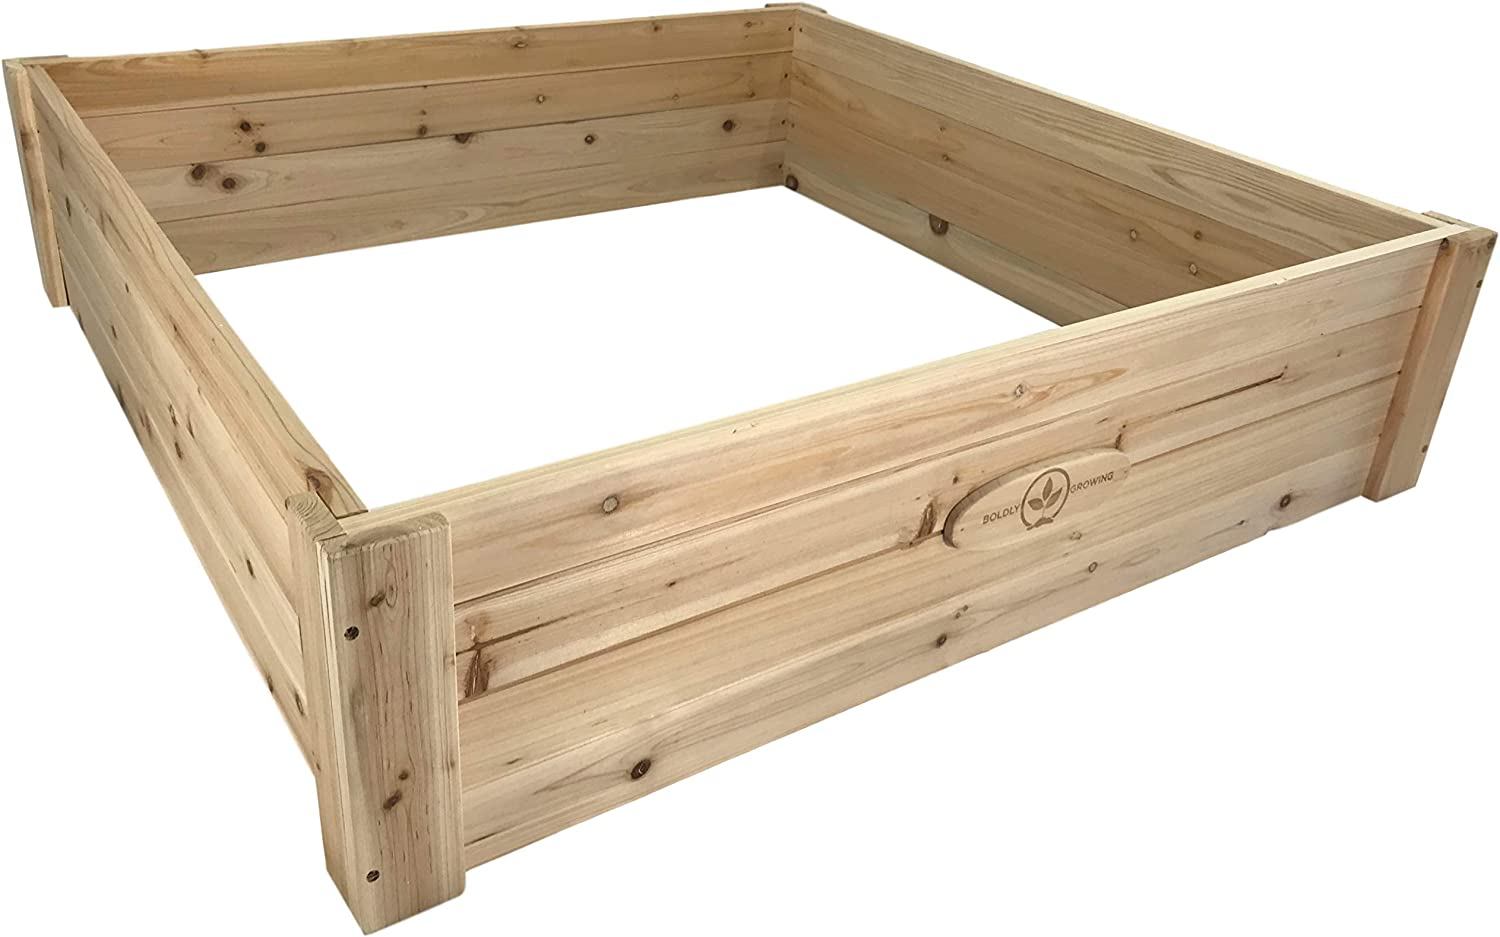 Cedar Raised Garden Bed Kit – Elevated Ground Planter for Growing Fruit/Vegetables/Herbs – (47 x 47 x 11) inches – Natural Rot-Resistant Wood Beds Last 5+ Years Outdoors